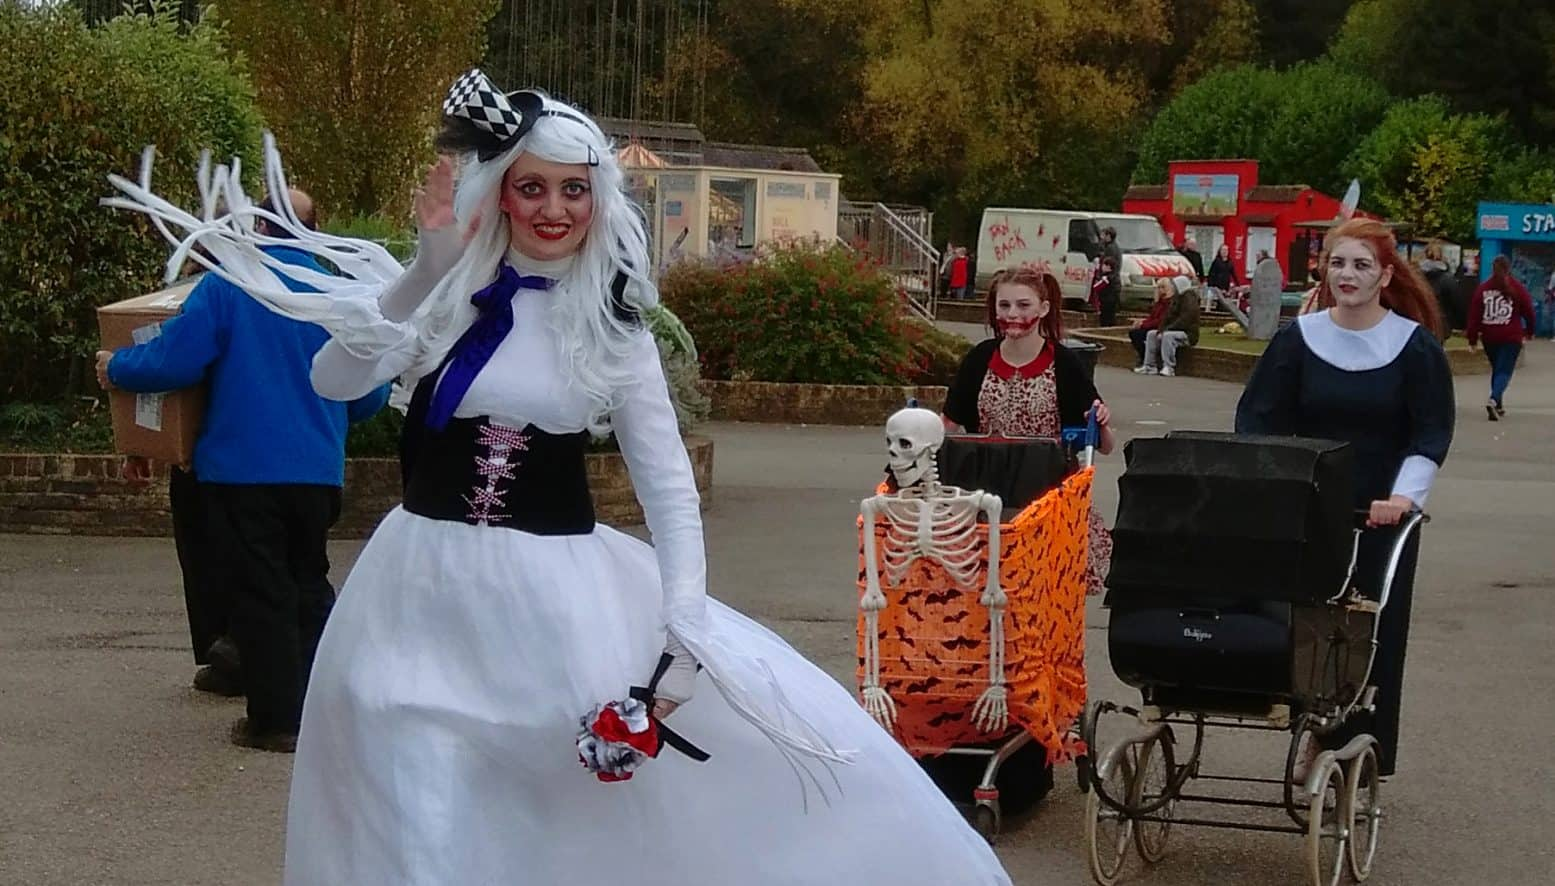 Frightwater Valley – Lightwater Valley with a Spooky Twist